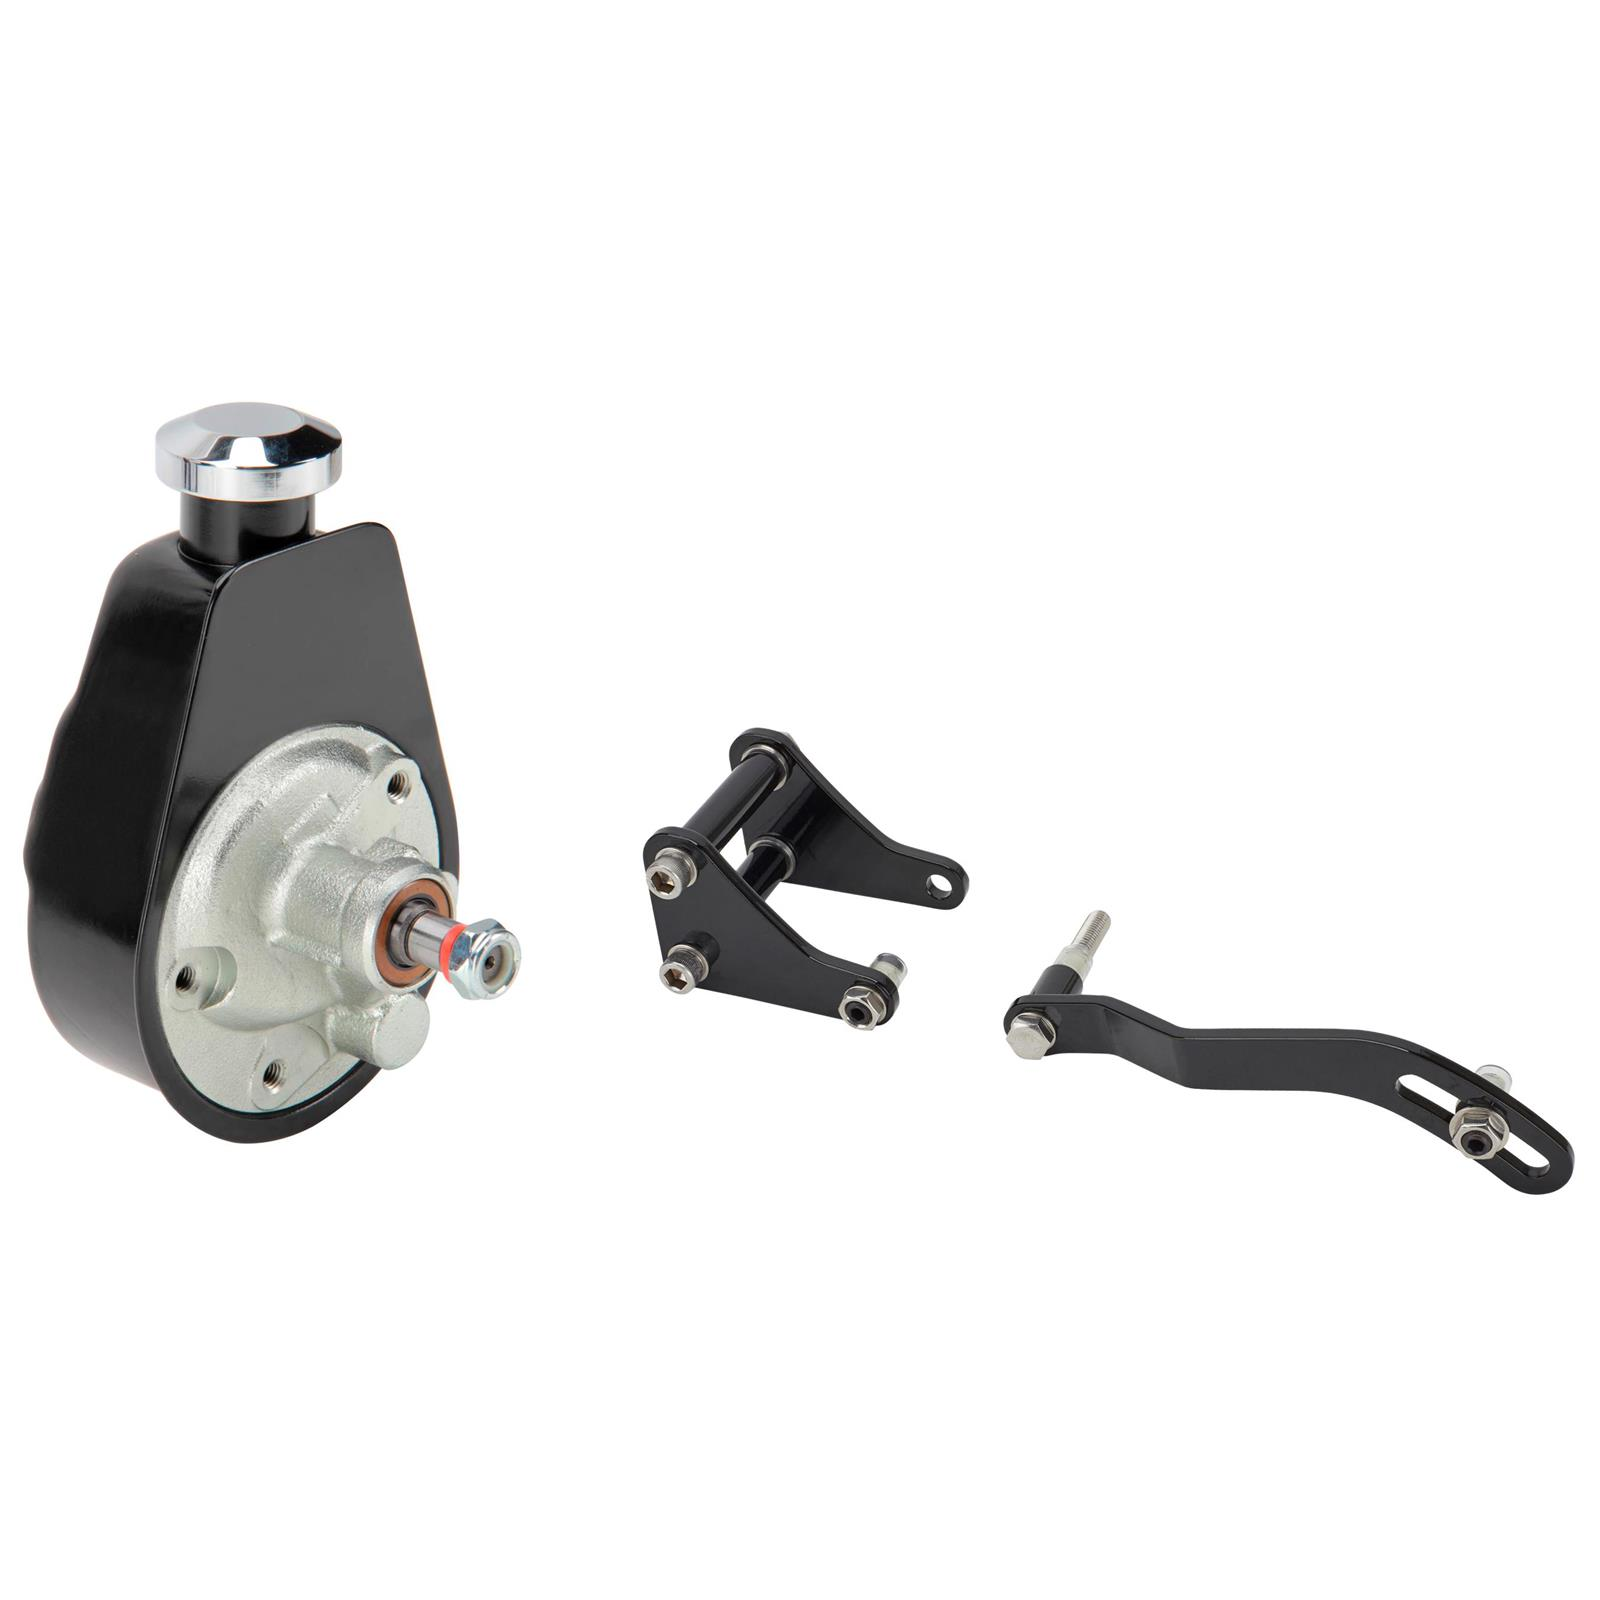 PTNHZ Saginaw Power Steering Pump P Series 5//8 Keyway Pulley Shaft Chrome Street//Hot Rod Reservoir Gearbox Relacement For 66-74 GM Chevy Chevrolet